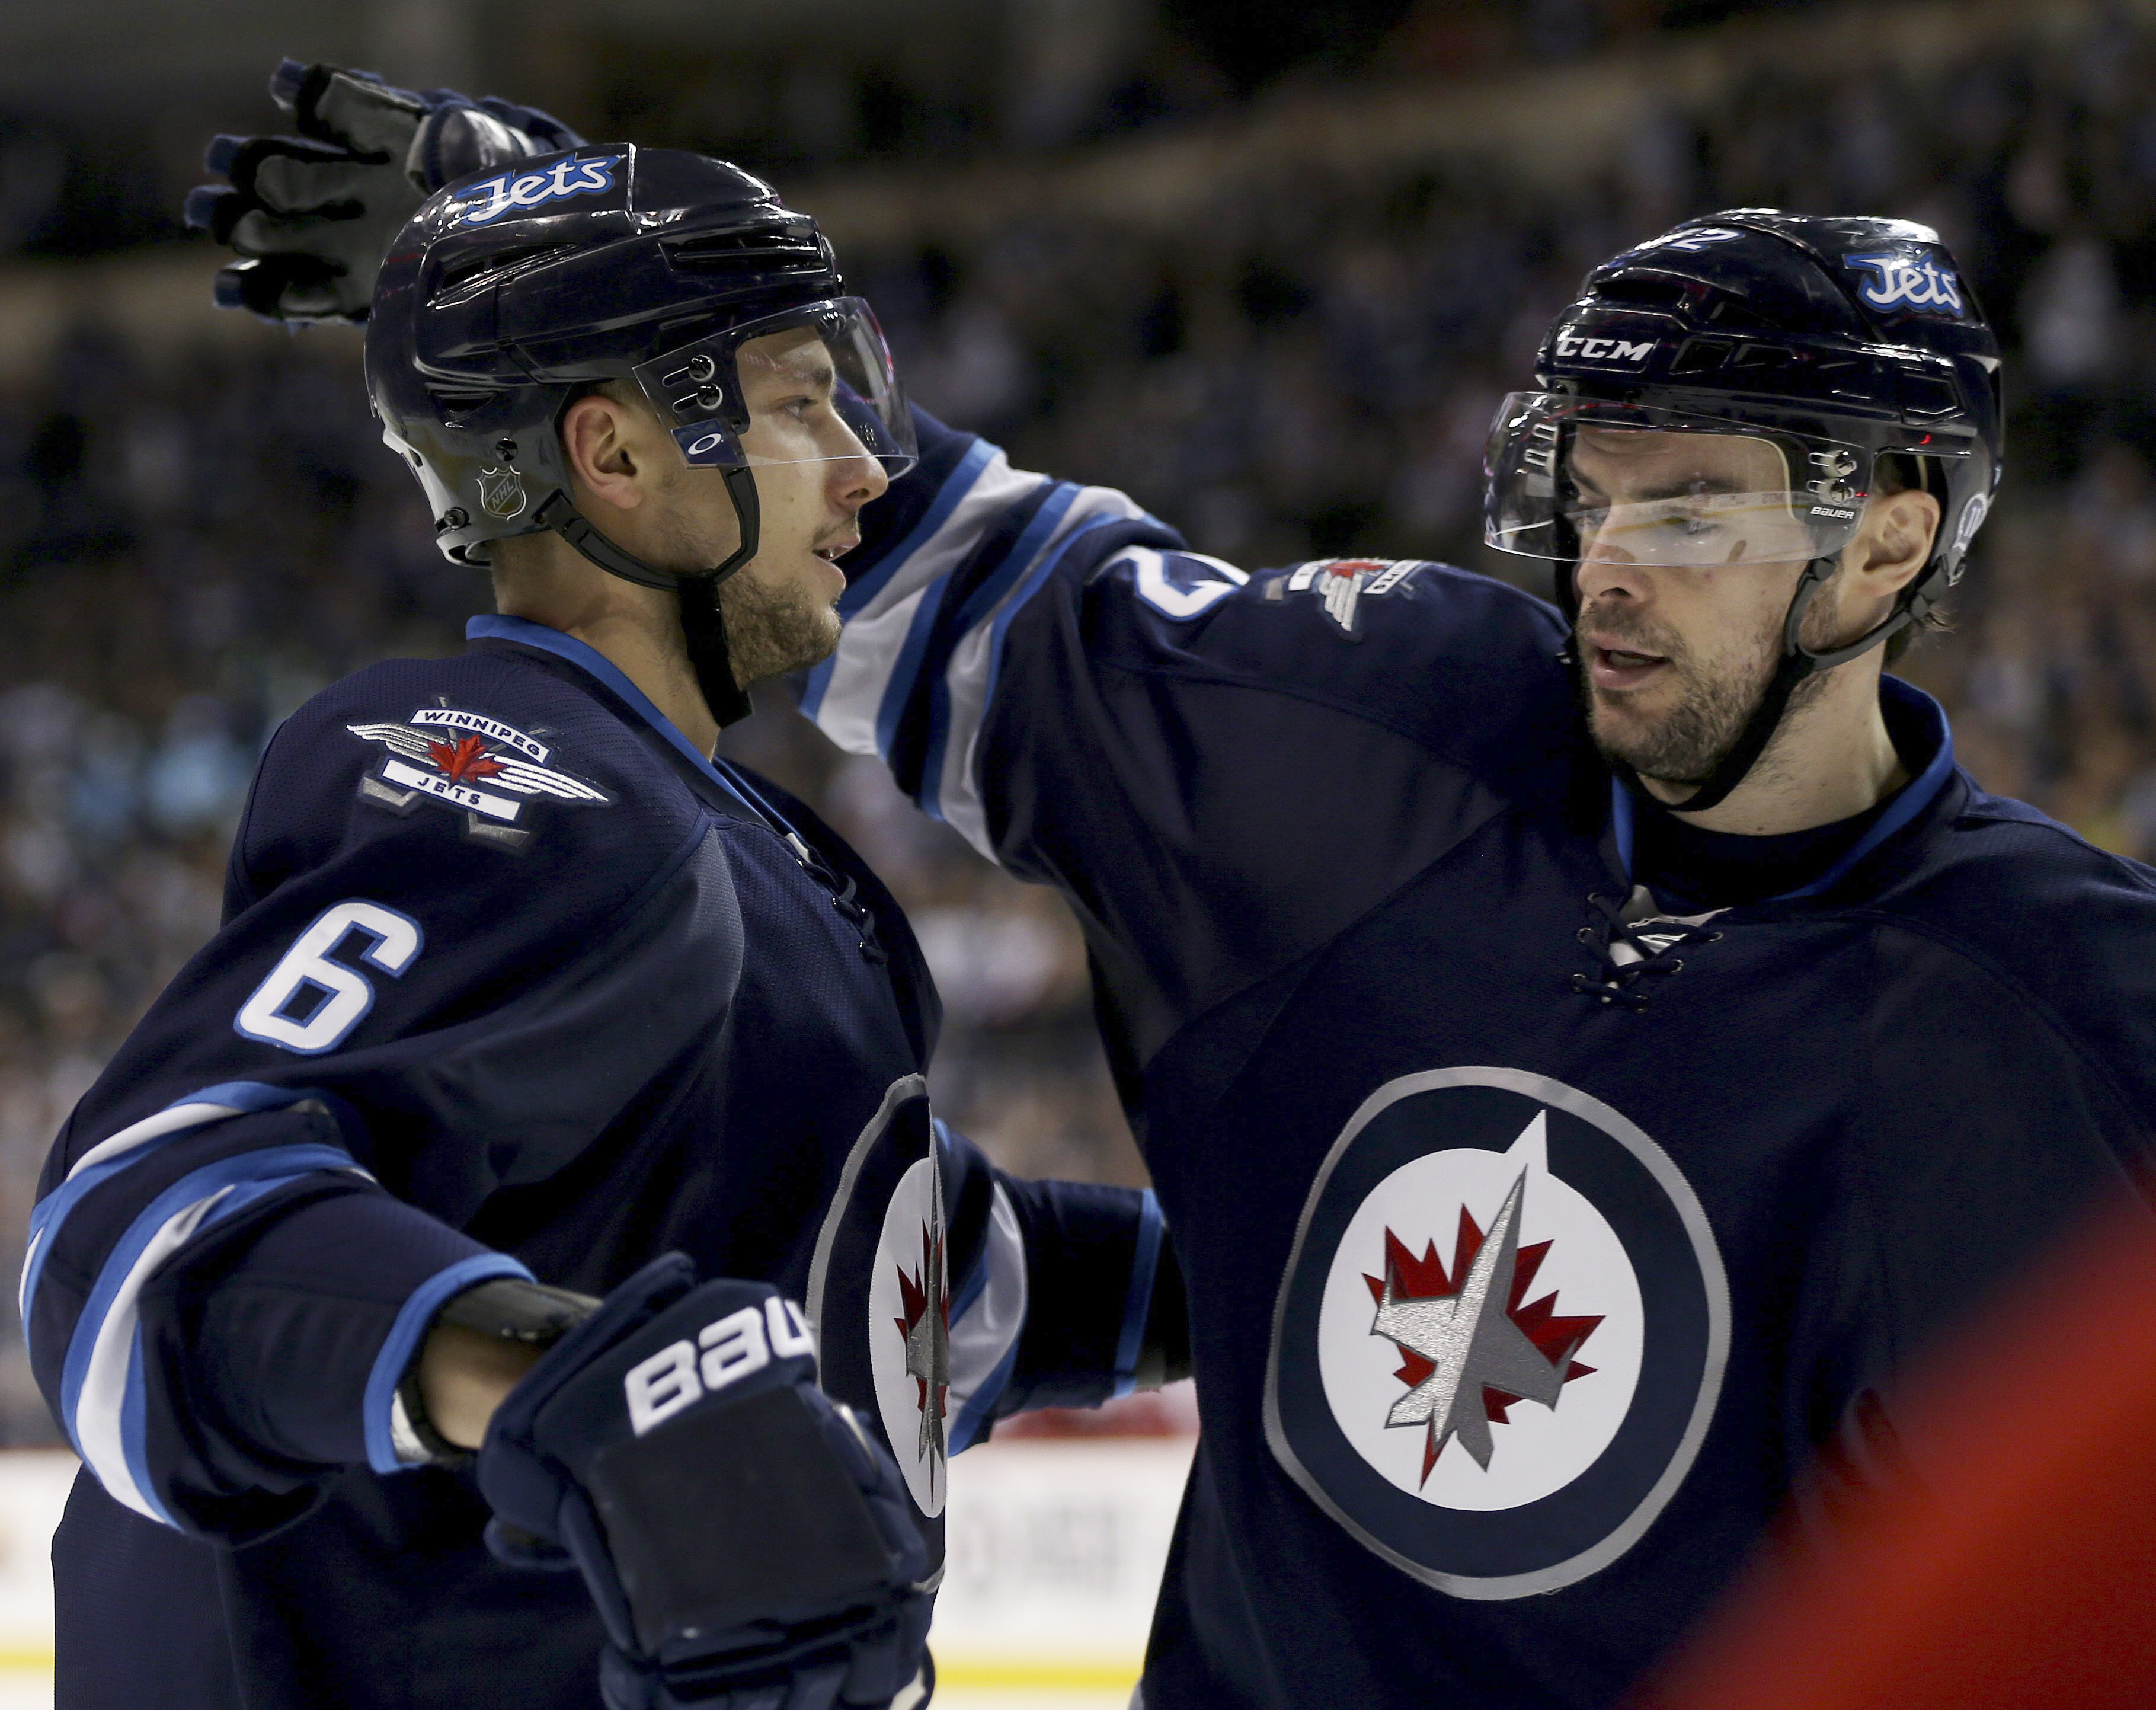 Winnipeg Jets' Alexander Burmistrov (6) and Drew Stafford (12) celebrate after Burmistrov scored against the Detroit Red Wings during the second period of an NHL hockey game Tuesday, Dec. 29, 2015, in Winnipeg, Manitoba. (Trevor Hagan/The Canadian Press v